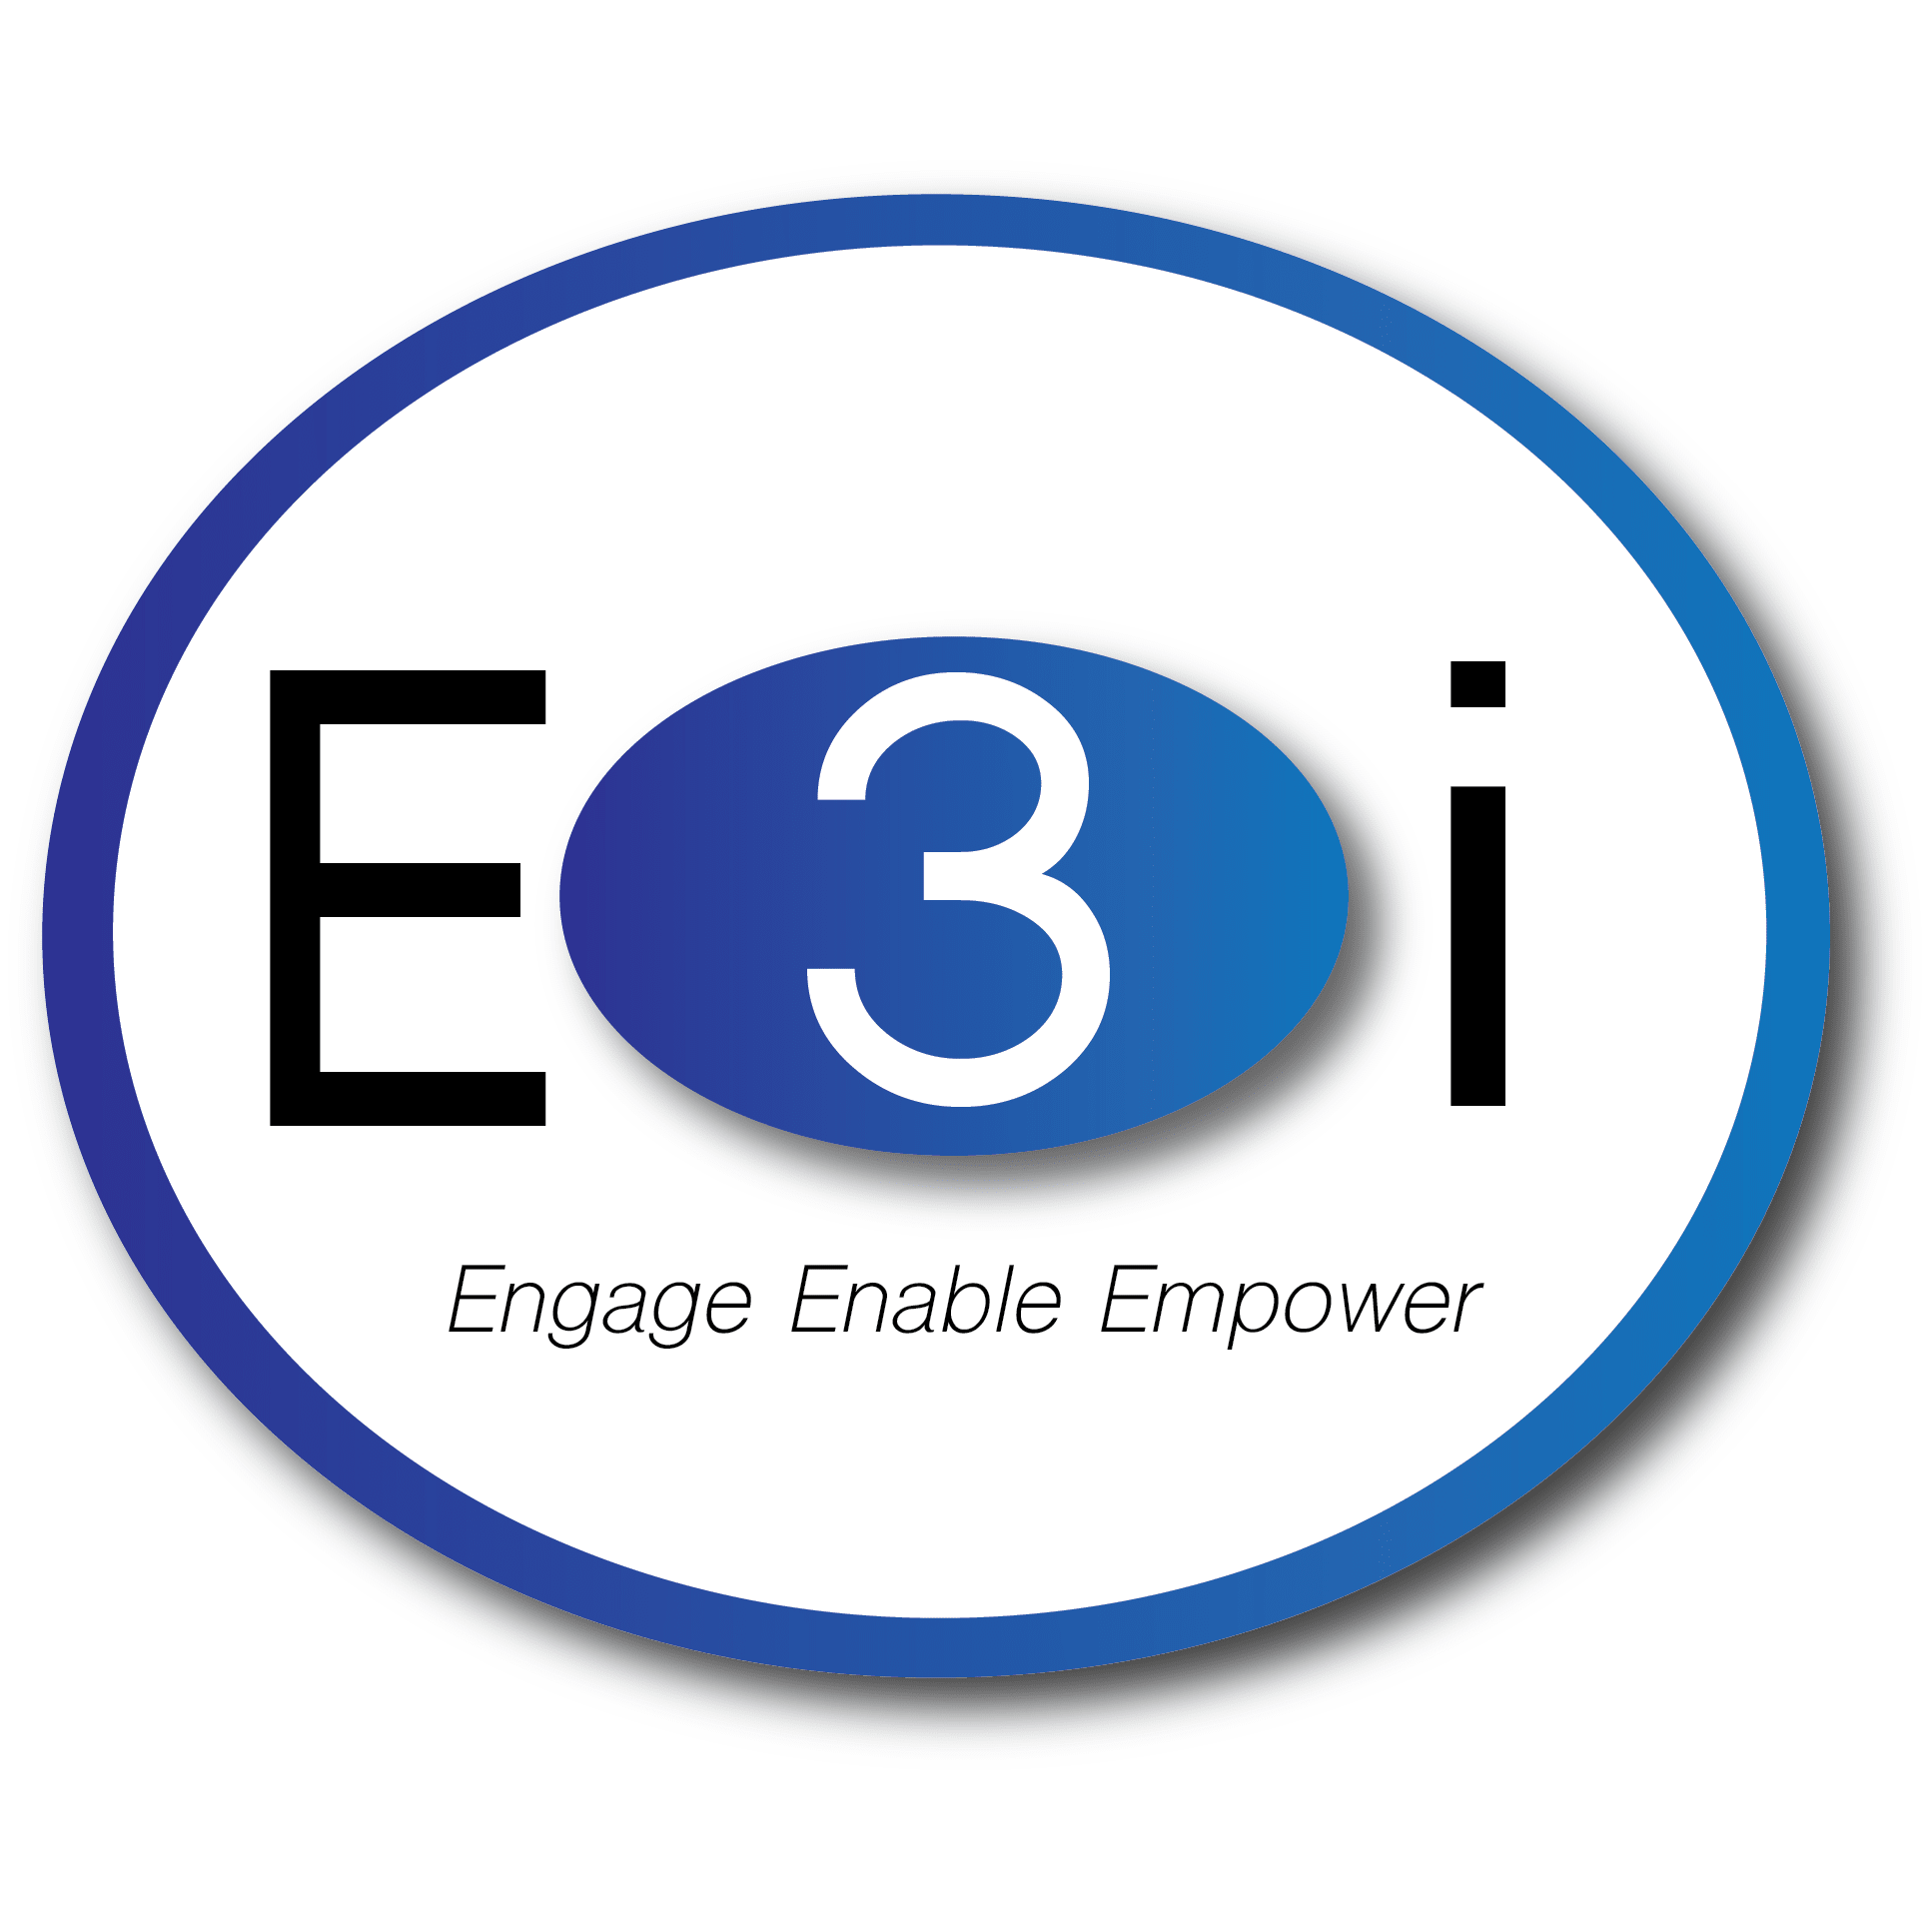 HR Services from E3i Cardiff - The People Experts! - Pontyclun, South Glamorgan CF72 8NG - 07535 443839 | ShowMeLocal.com